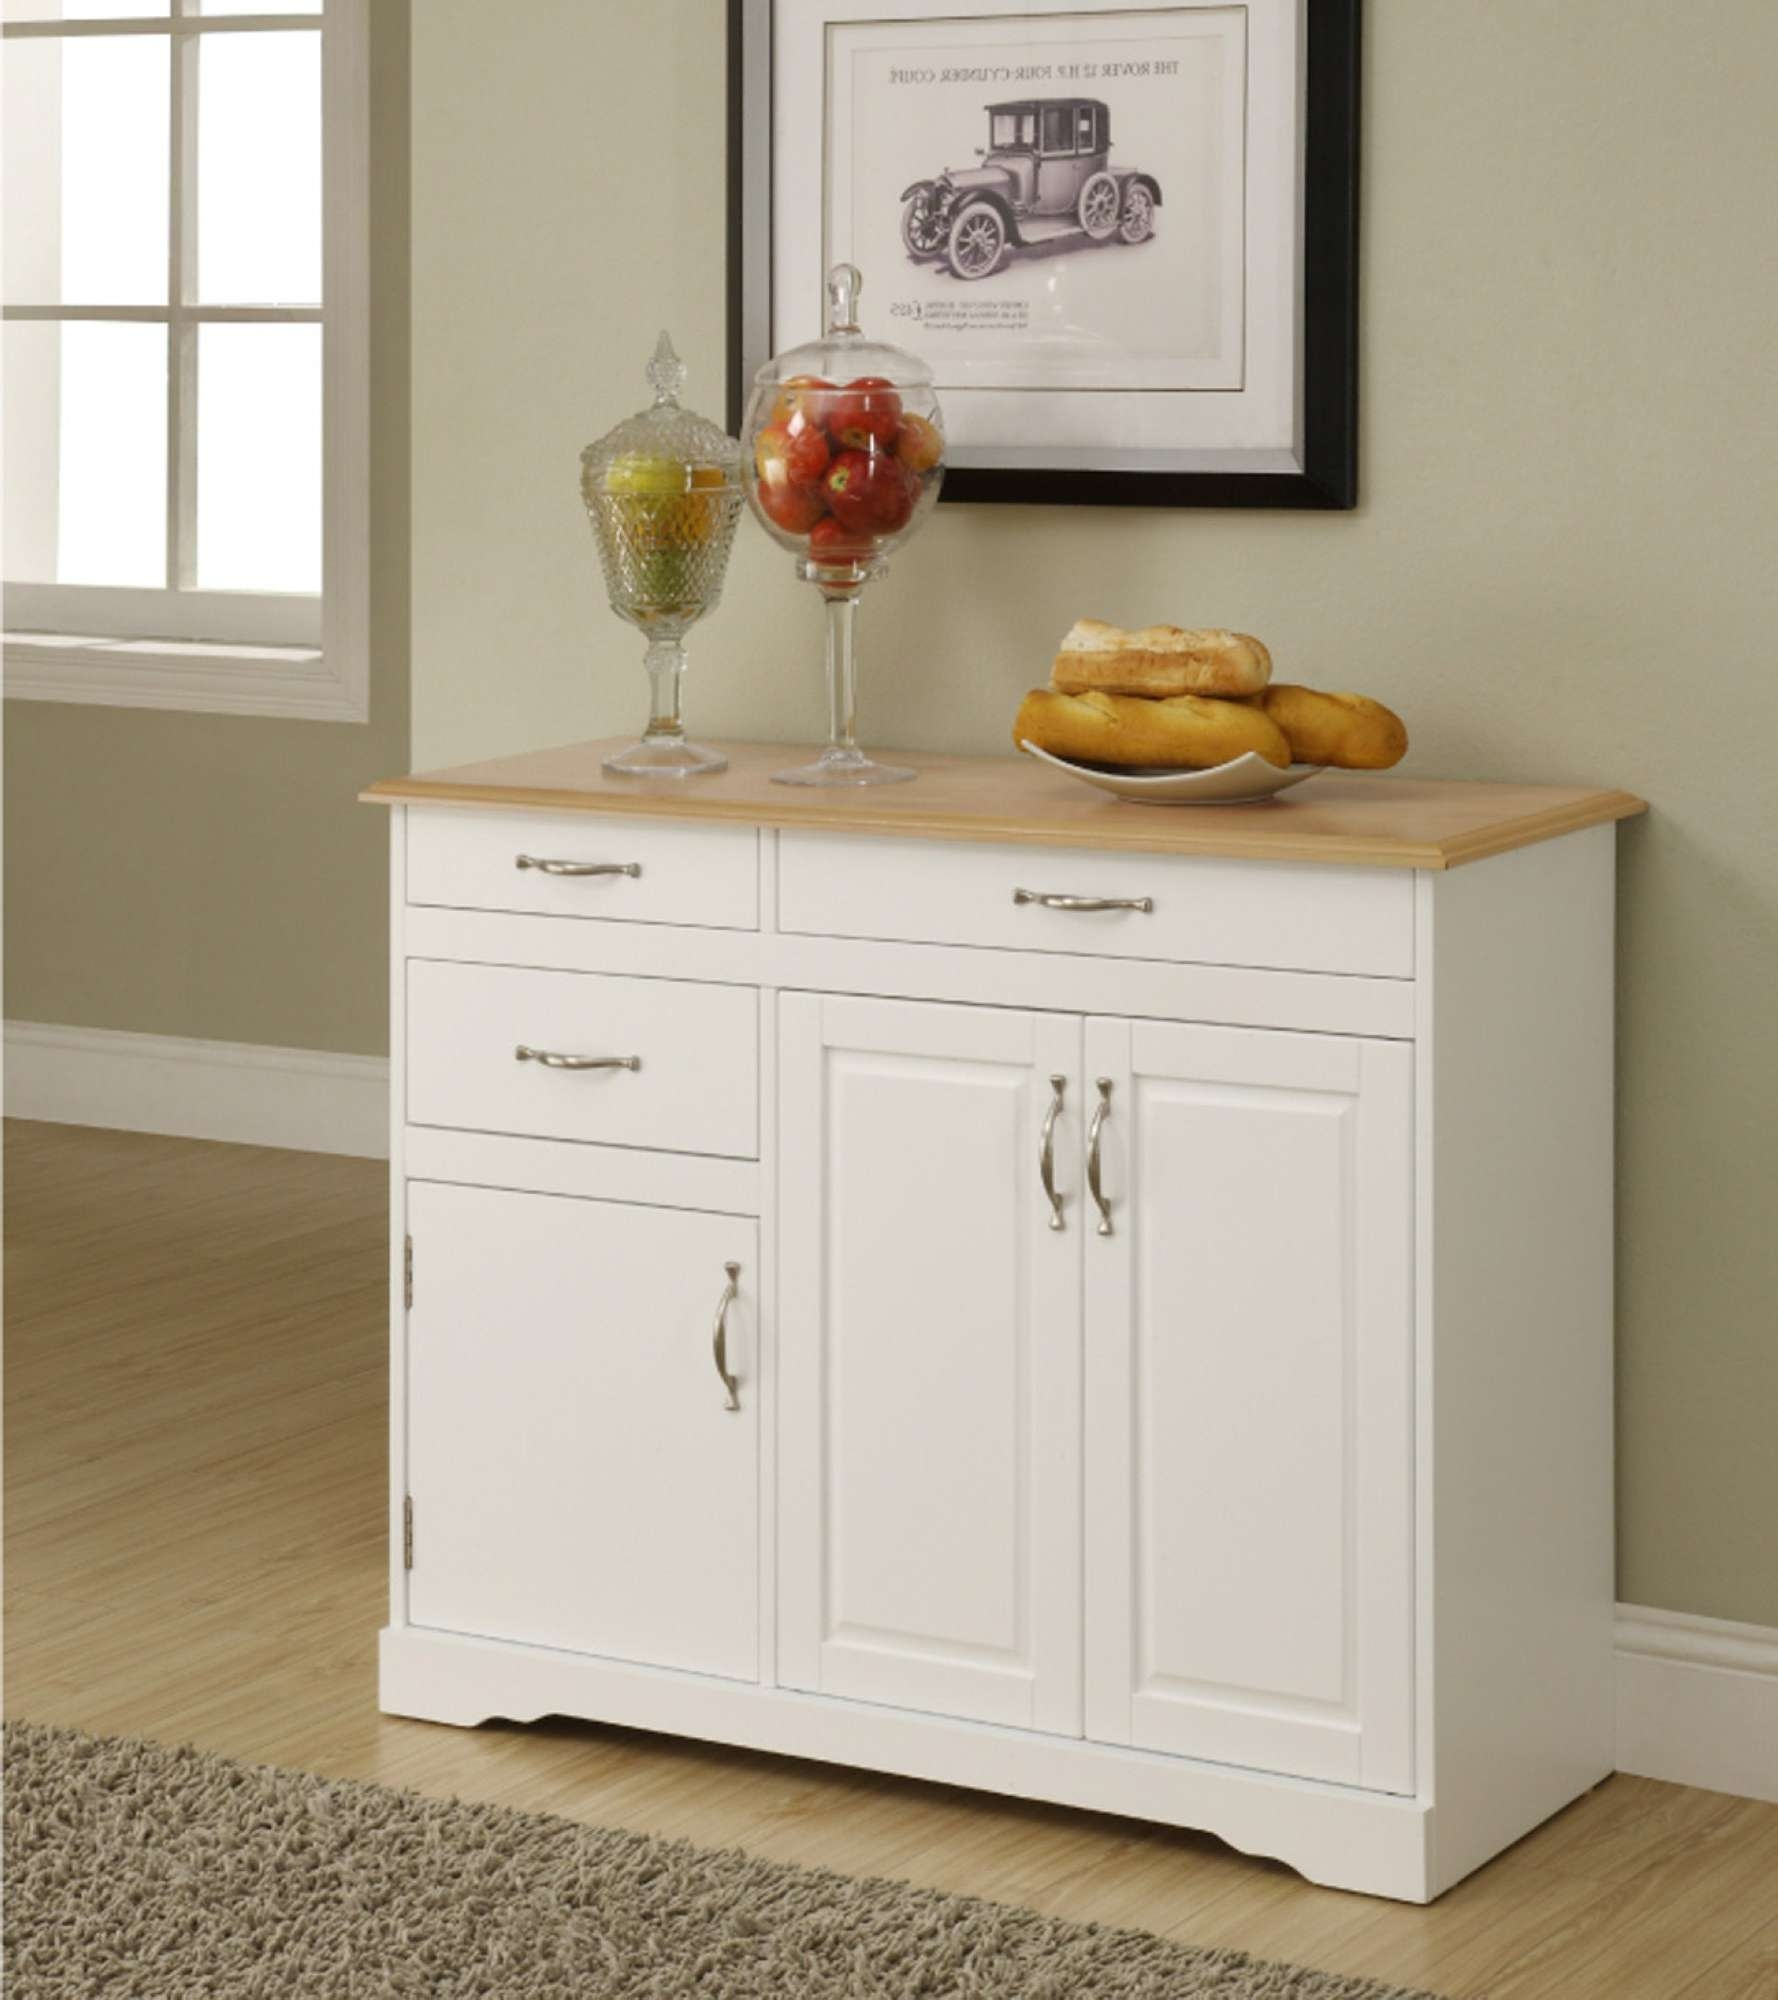 Antique Kitchen Buffet – Bestartisticinteriors For White Sideboards Cabinets (View 3 of 20)